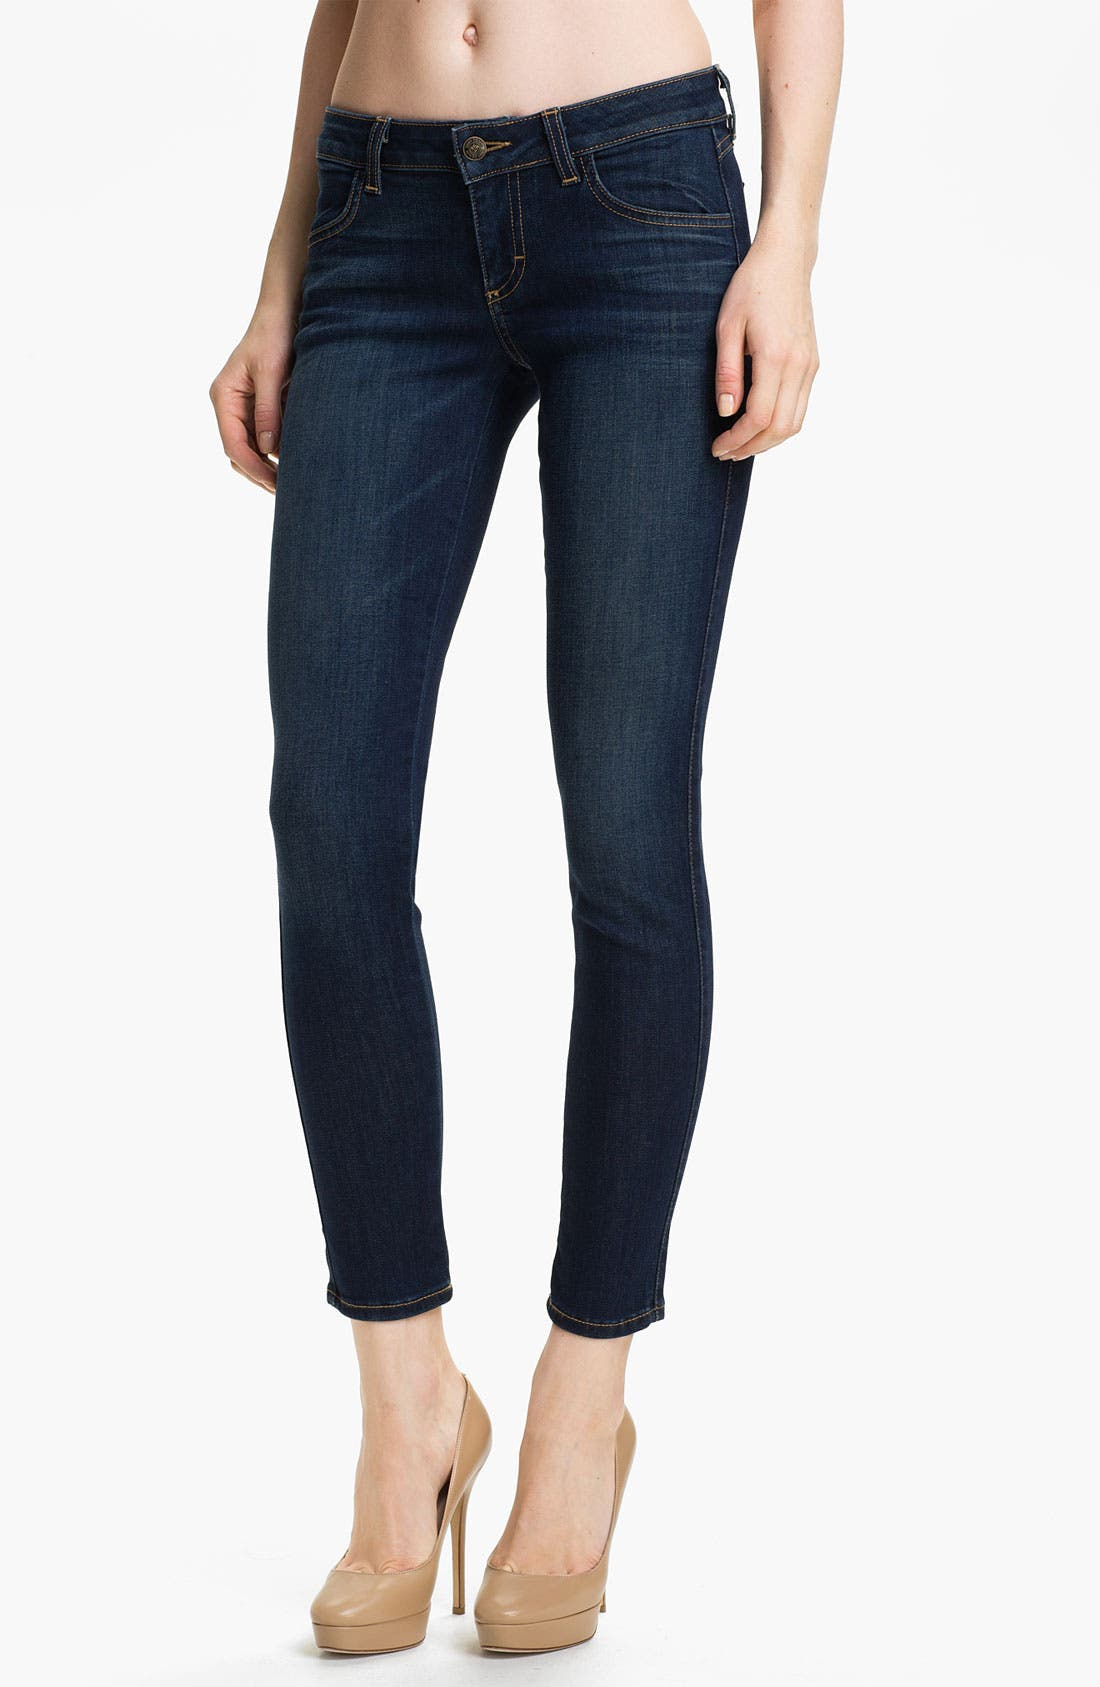 Alternate Image 1 Selected - Siwy 'Hannah' Crop Skinny Stretch Jeans (Intense Love)